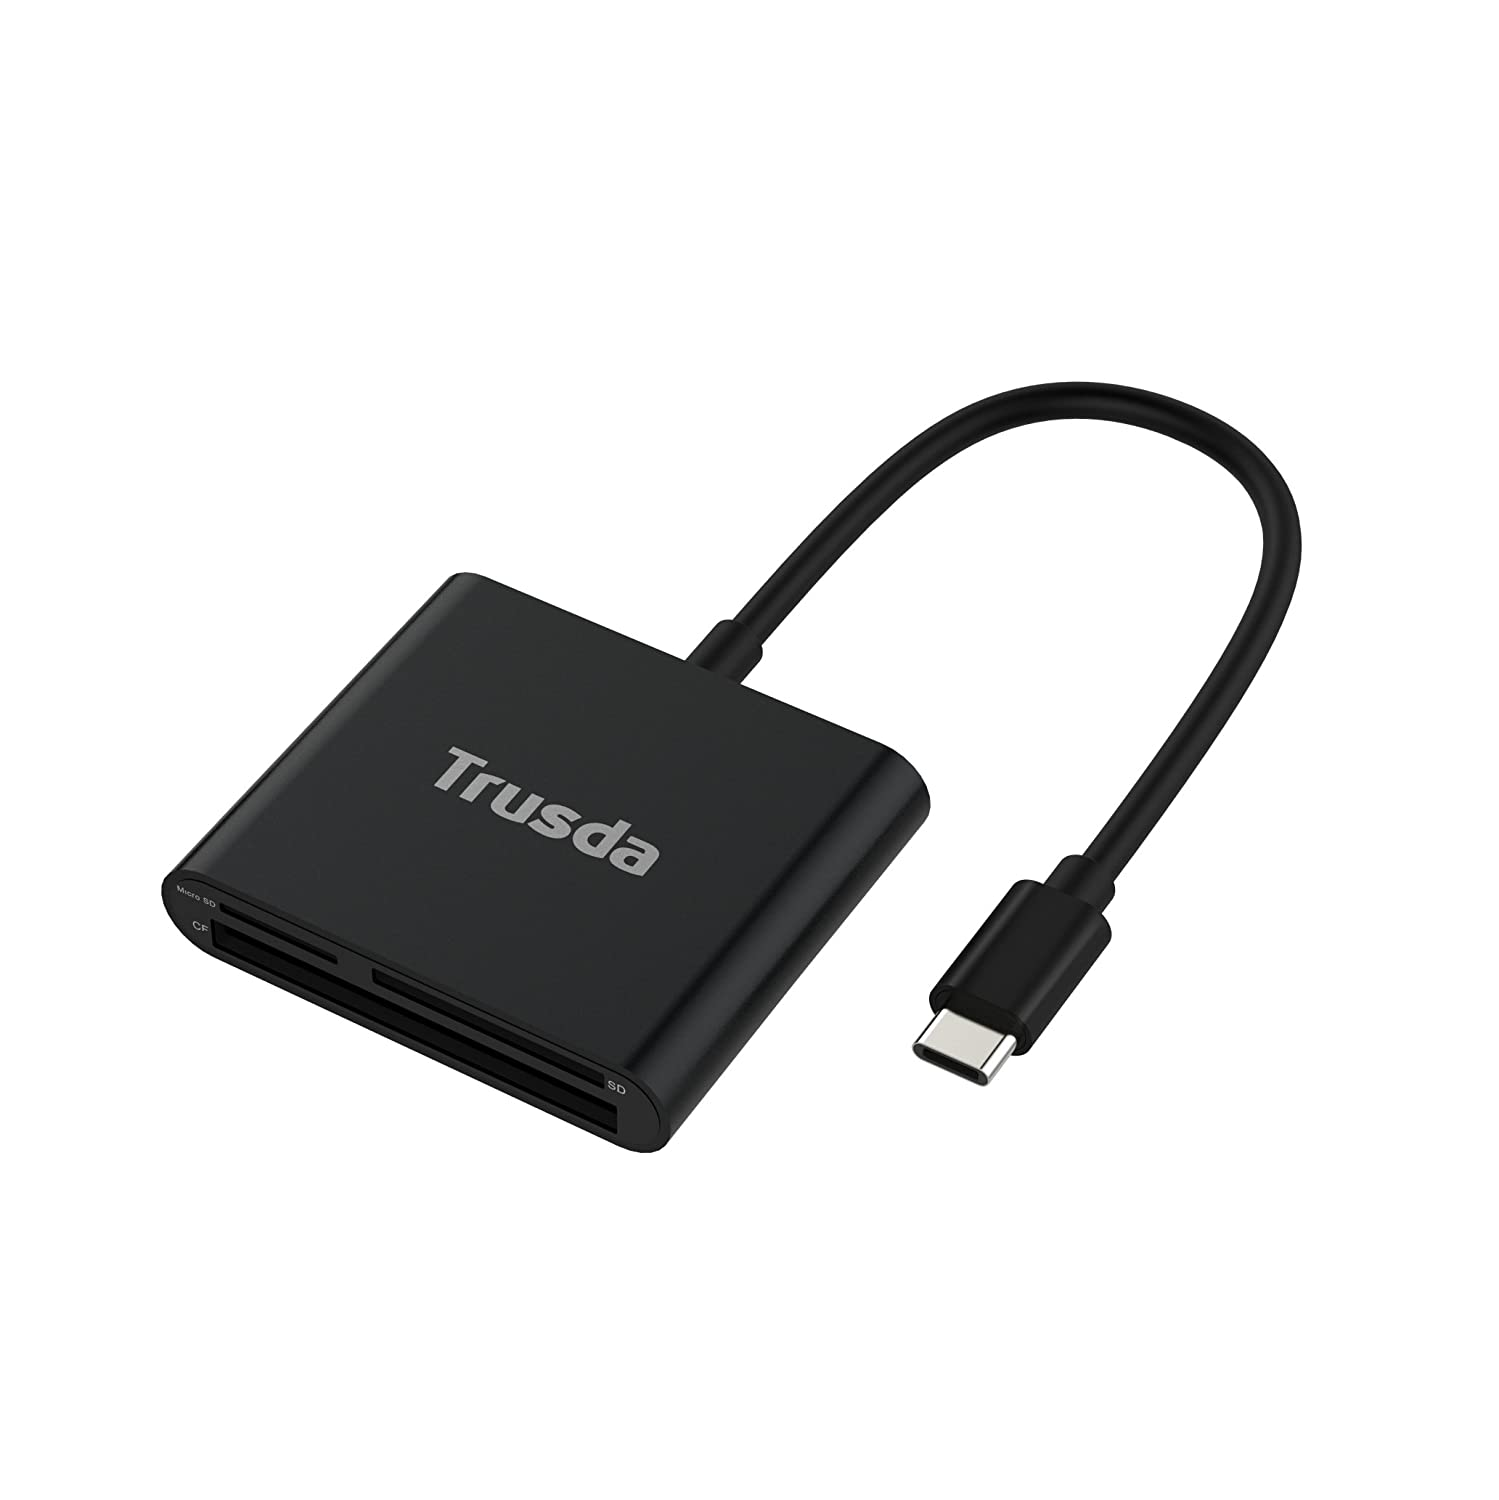 Lettore di Schede SD,Trusda Type C Lettura Schede,Card Reader Memoria Micro SD/TF/SDHC/SDXC/CF con Cavo USB C Superspeed 5Gbps per Macbook Pro,Chromebook Pixel,HUAWEI P9/P10,Mate10, Samsung Galaxy S8 CR2C